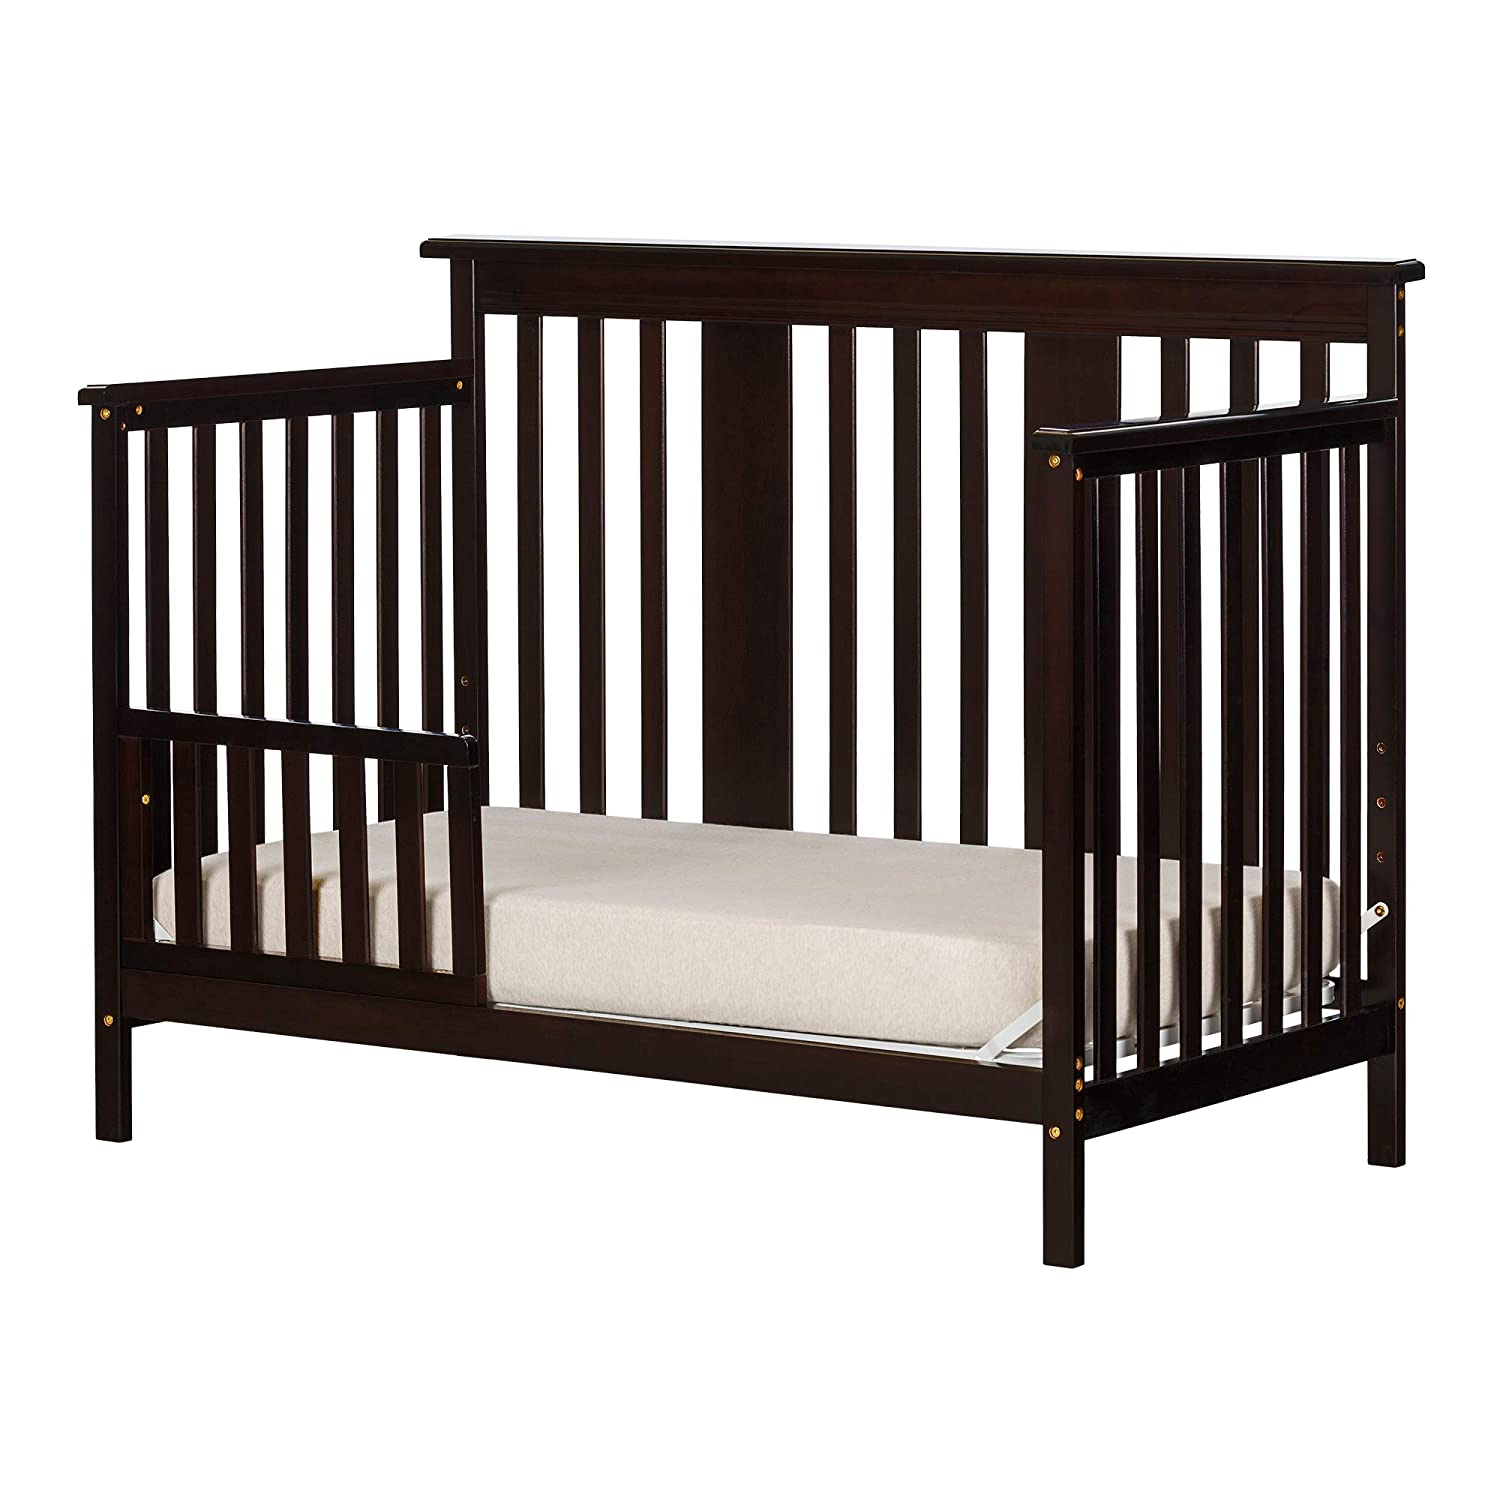 Espresso South Shore Furniture 11850 Little Smileys Baby Crib 4 Heights with Toddler Rail